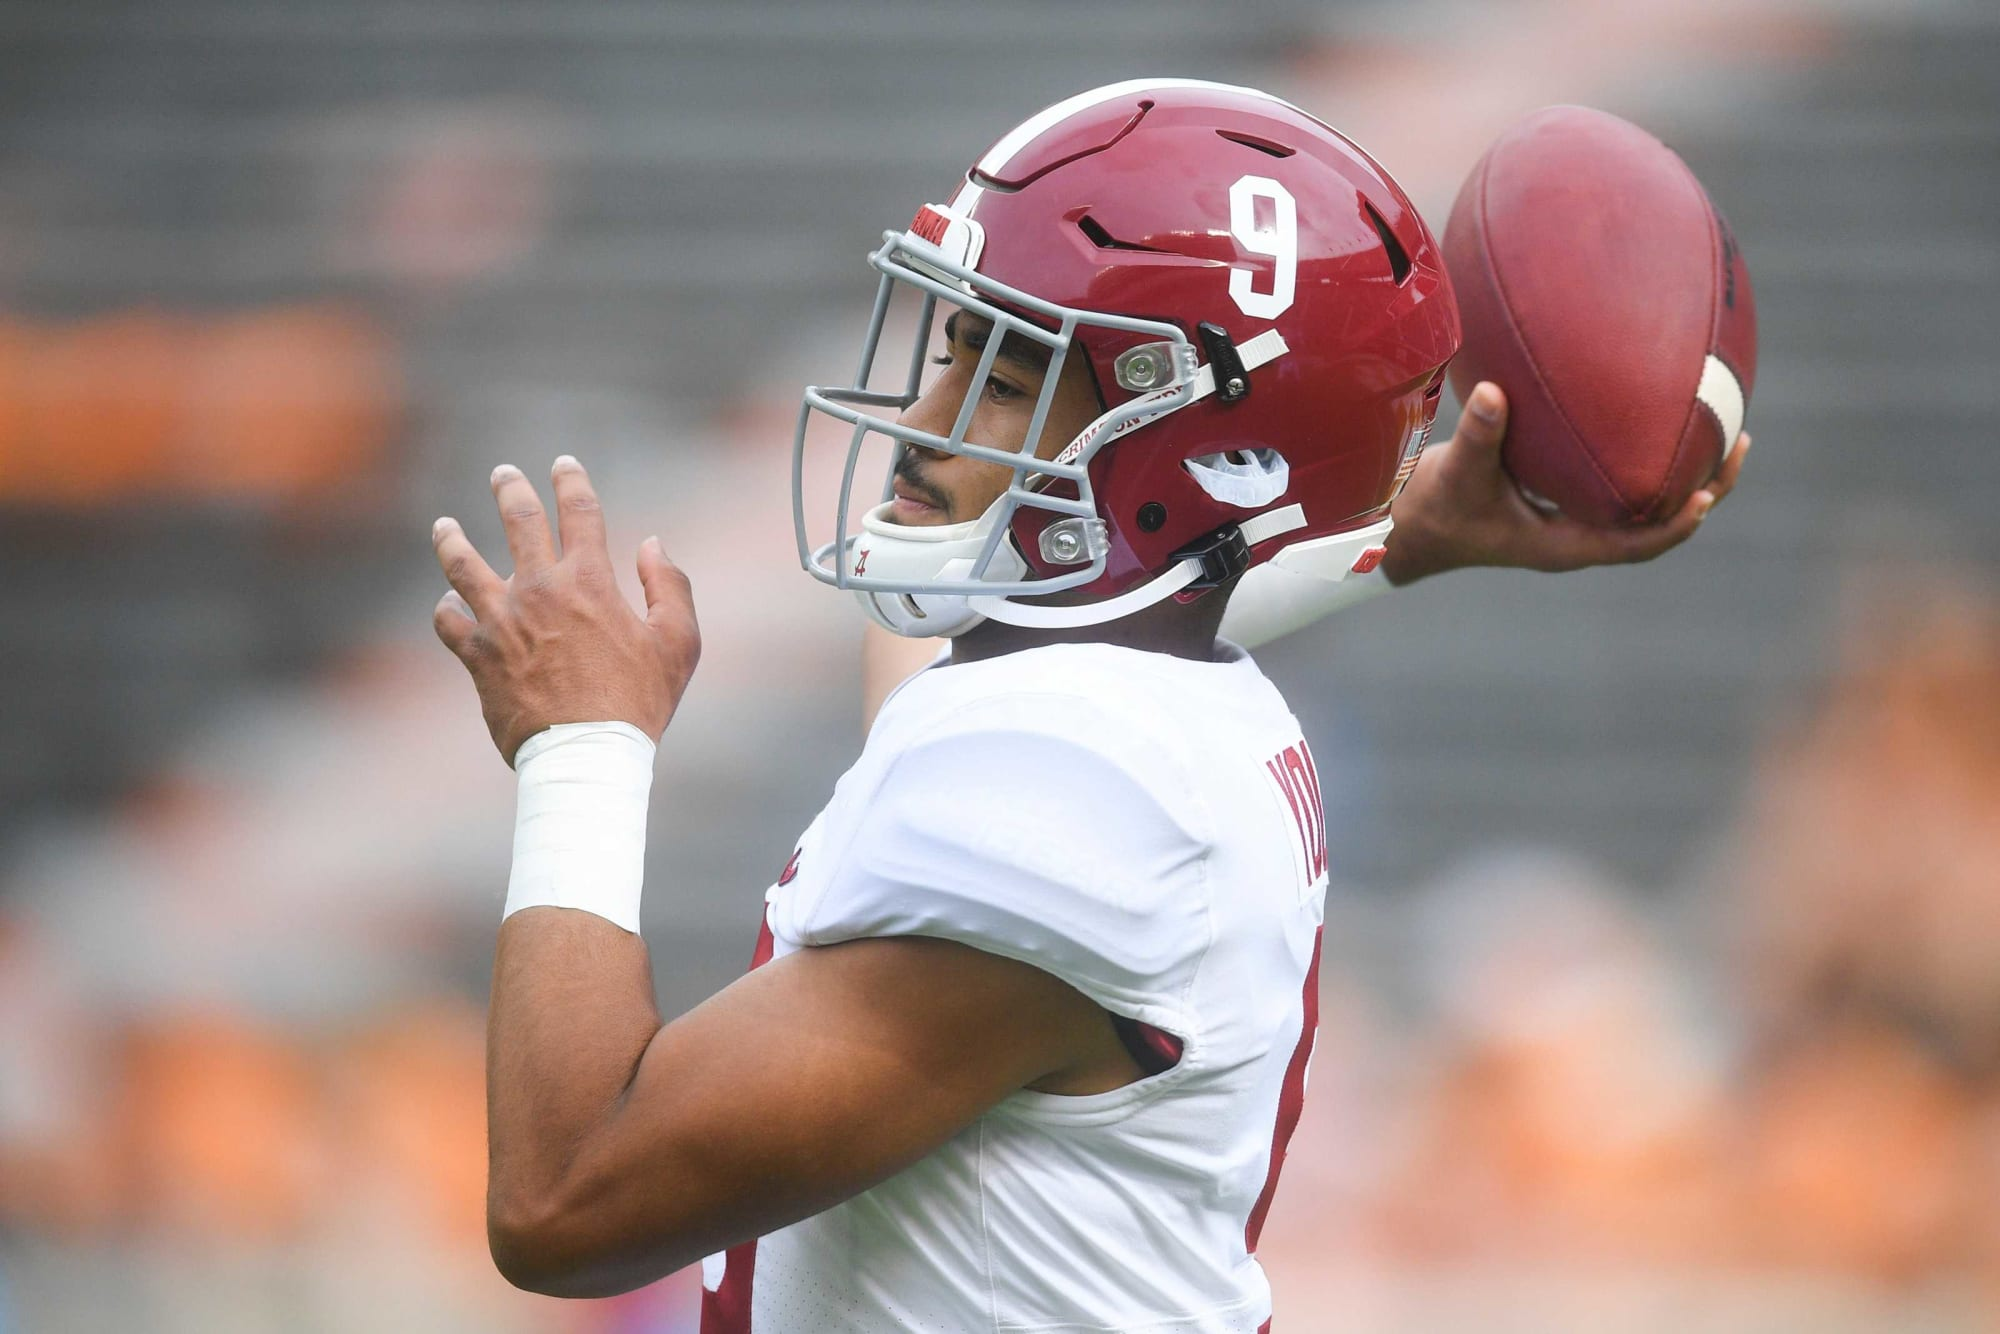 Alabama football: Bryce Young spring game performance gets hype train at full speed